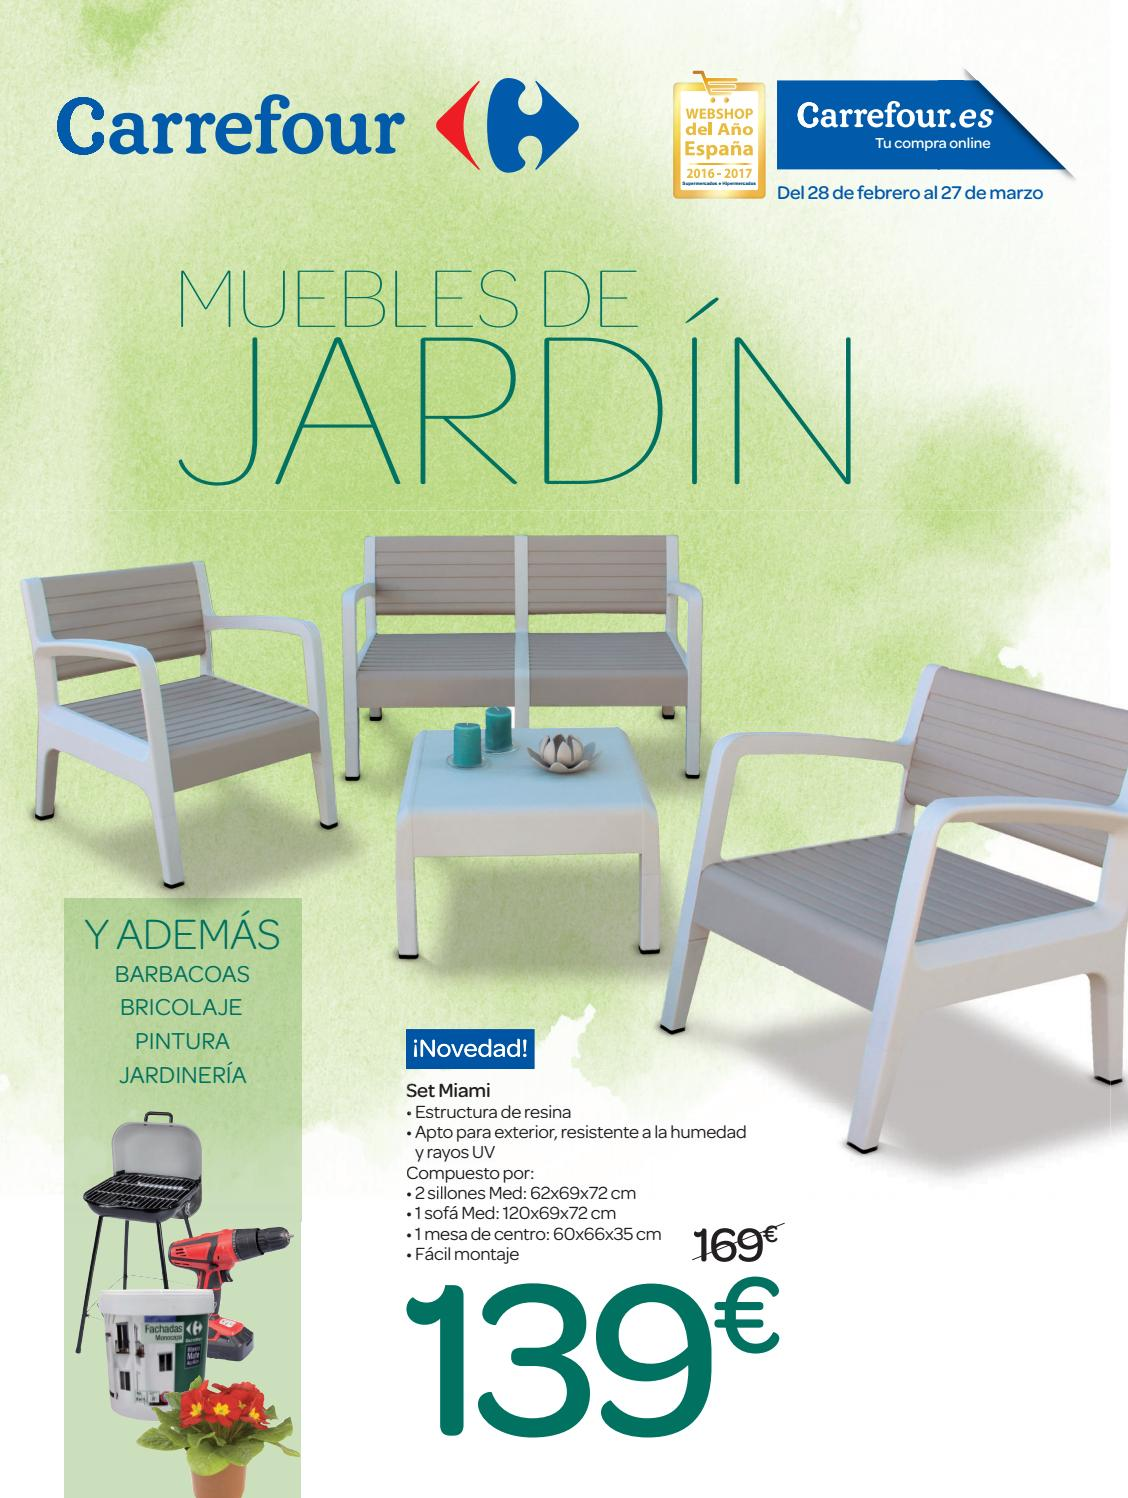 Muebles de jardin carrefour by ofertas supermercados issuu for Ofertas muebles de jardin carrefour